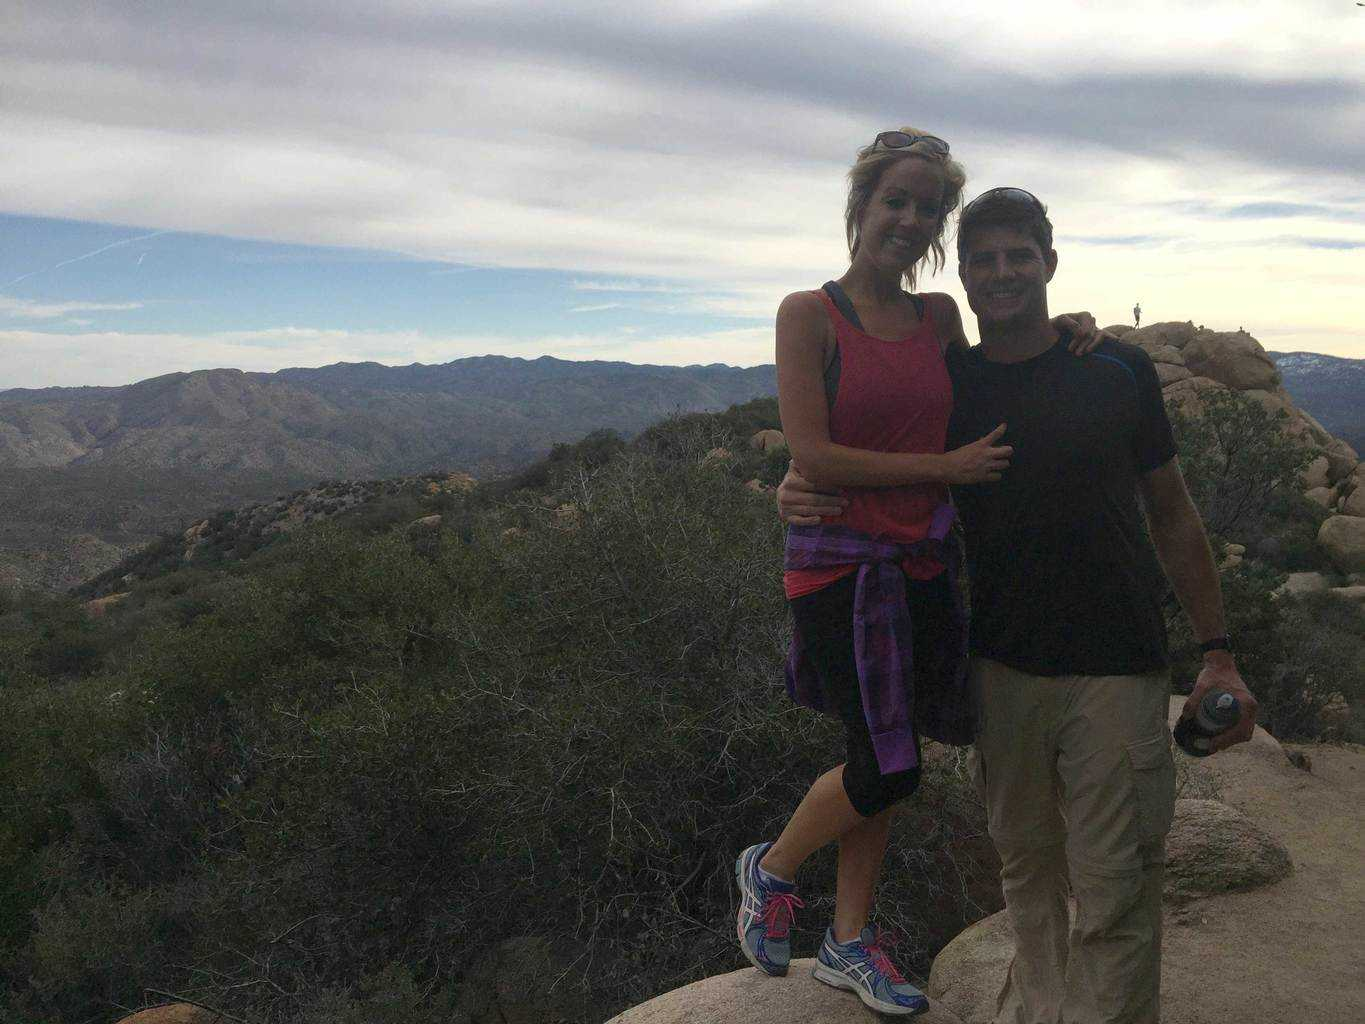 Pinnacles-Peak-Lake-Arrowhead-Hiking-Trail-5